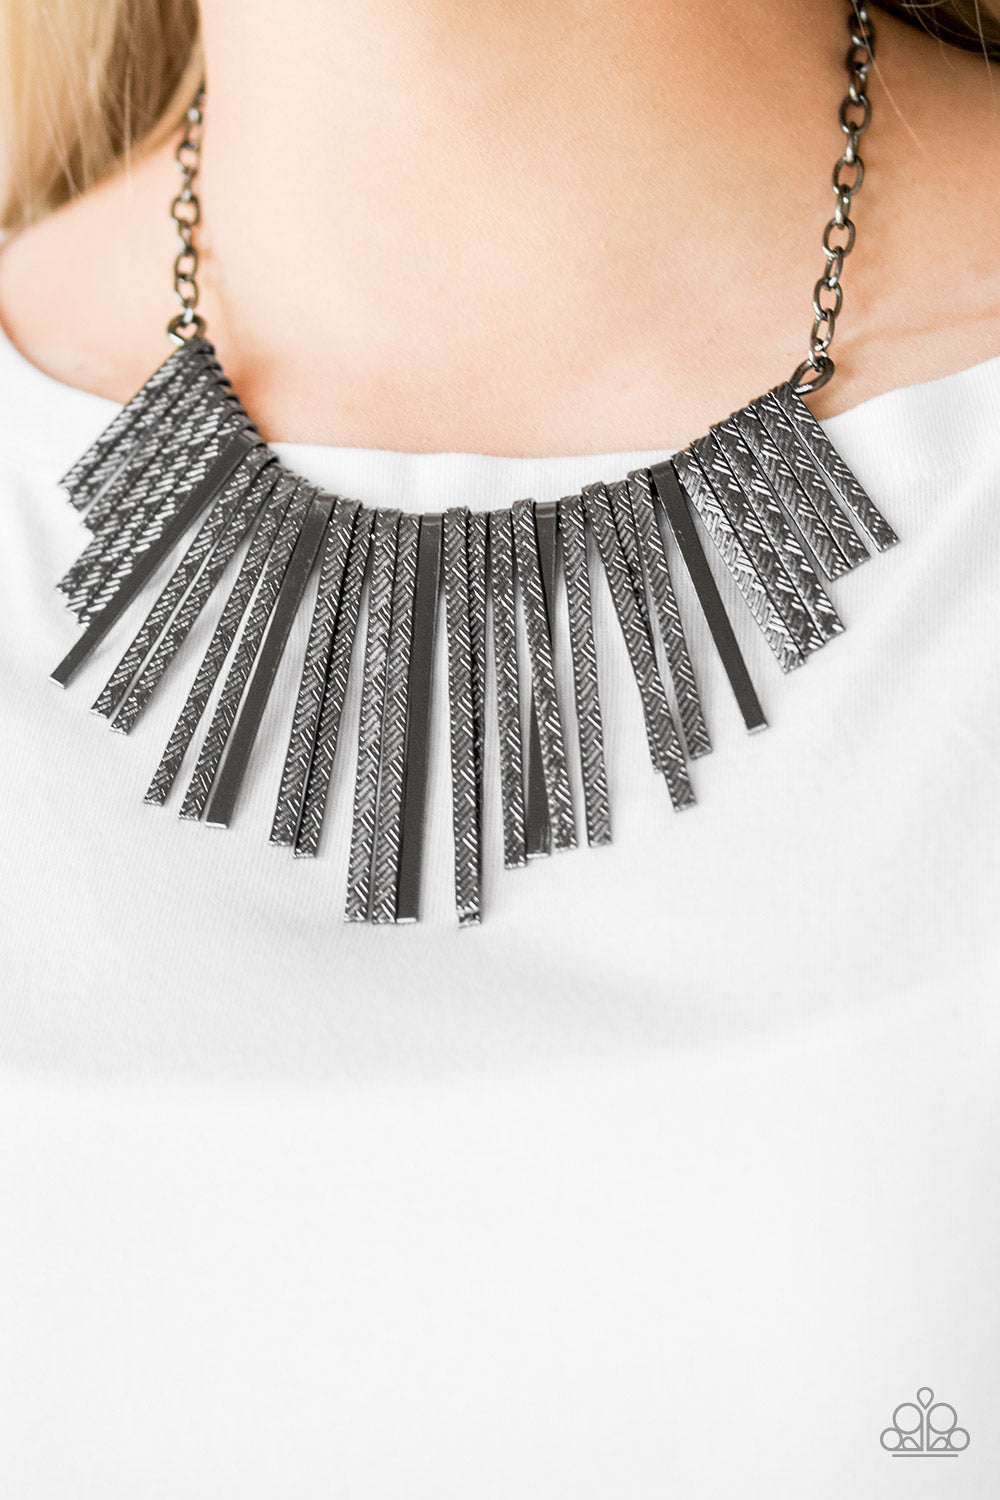 Welcome To The Pack - Black Fringe Paparazzi Jewelry Necklace paparazzi accessories jewelry necklace